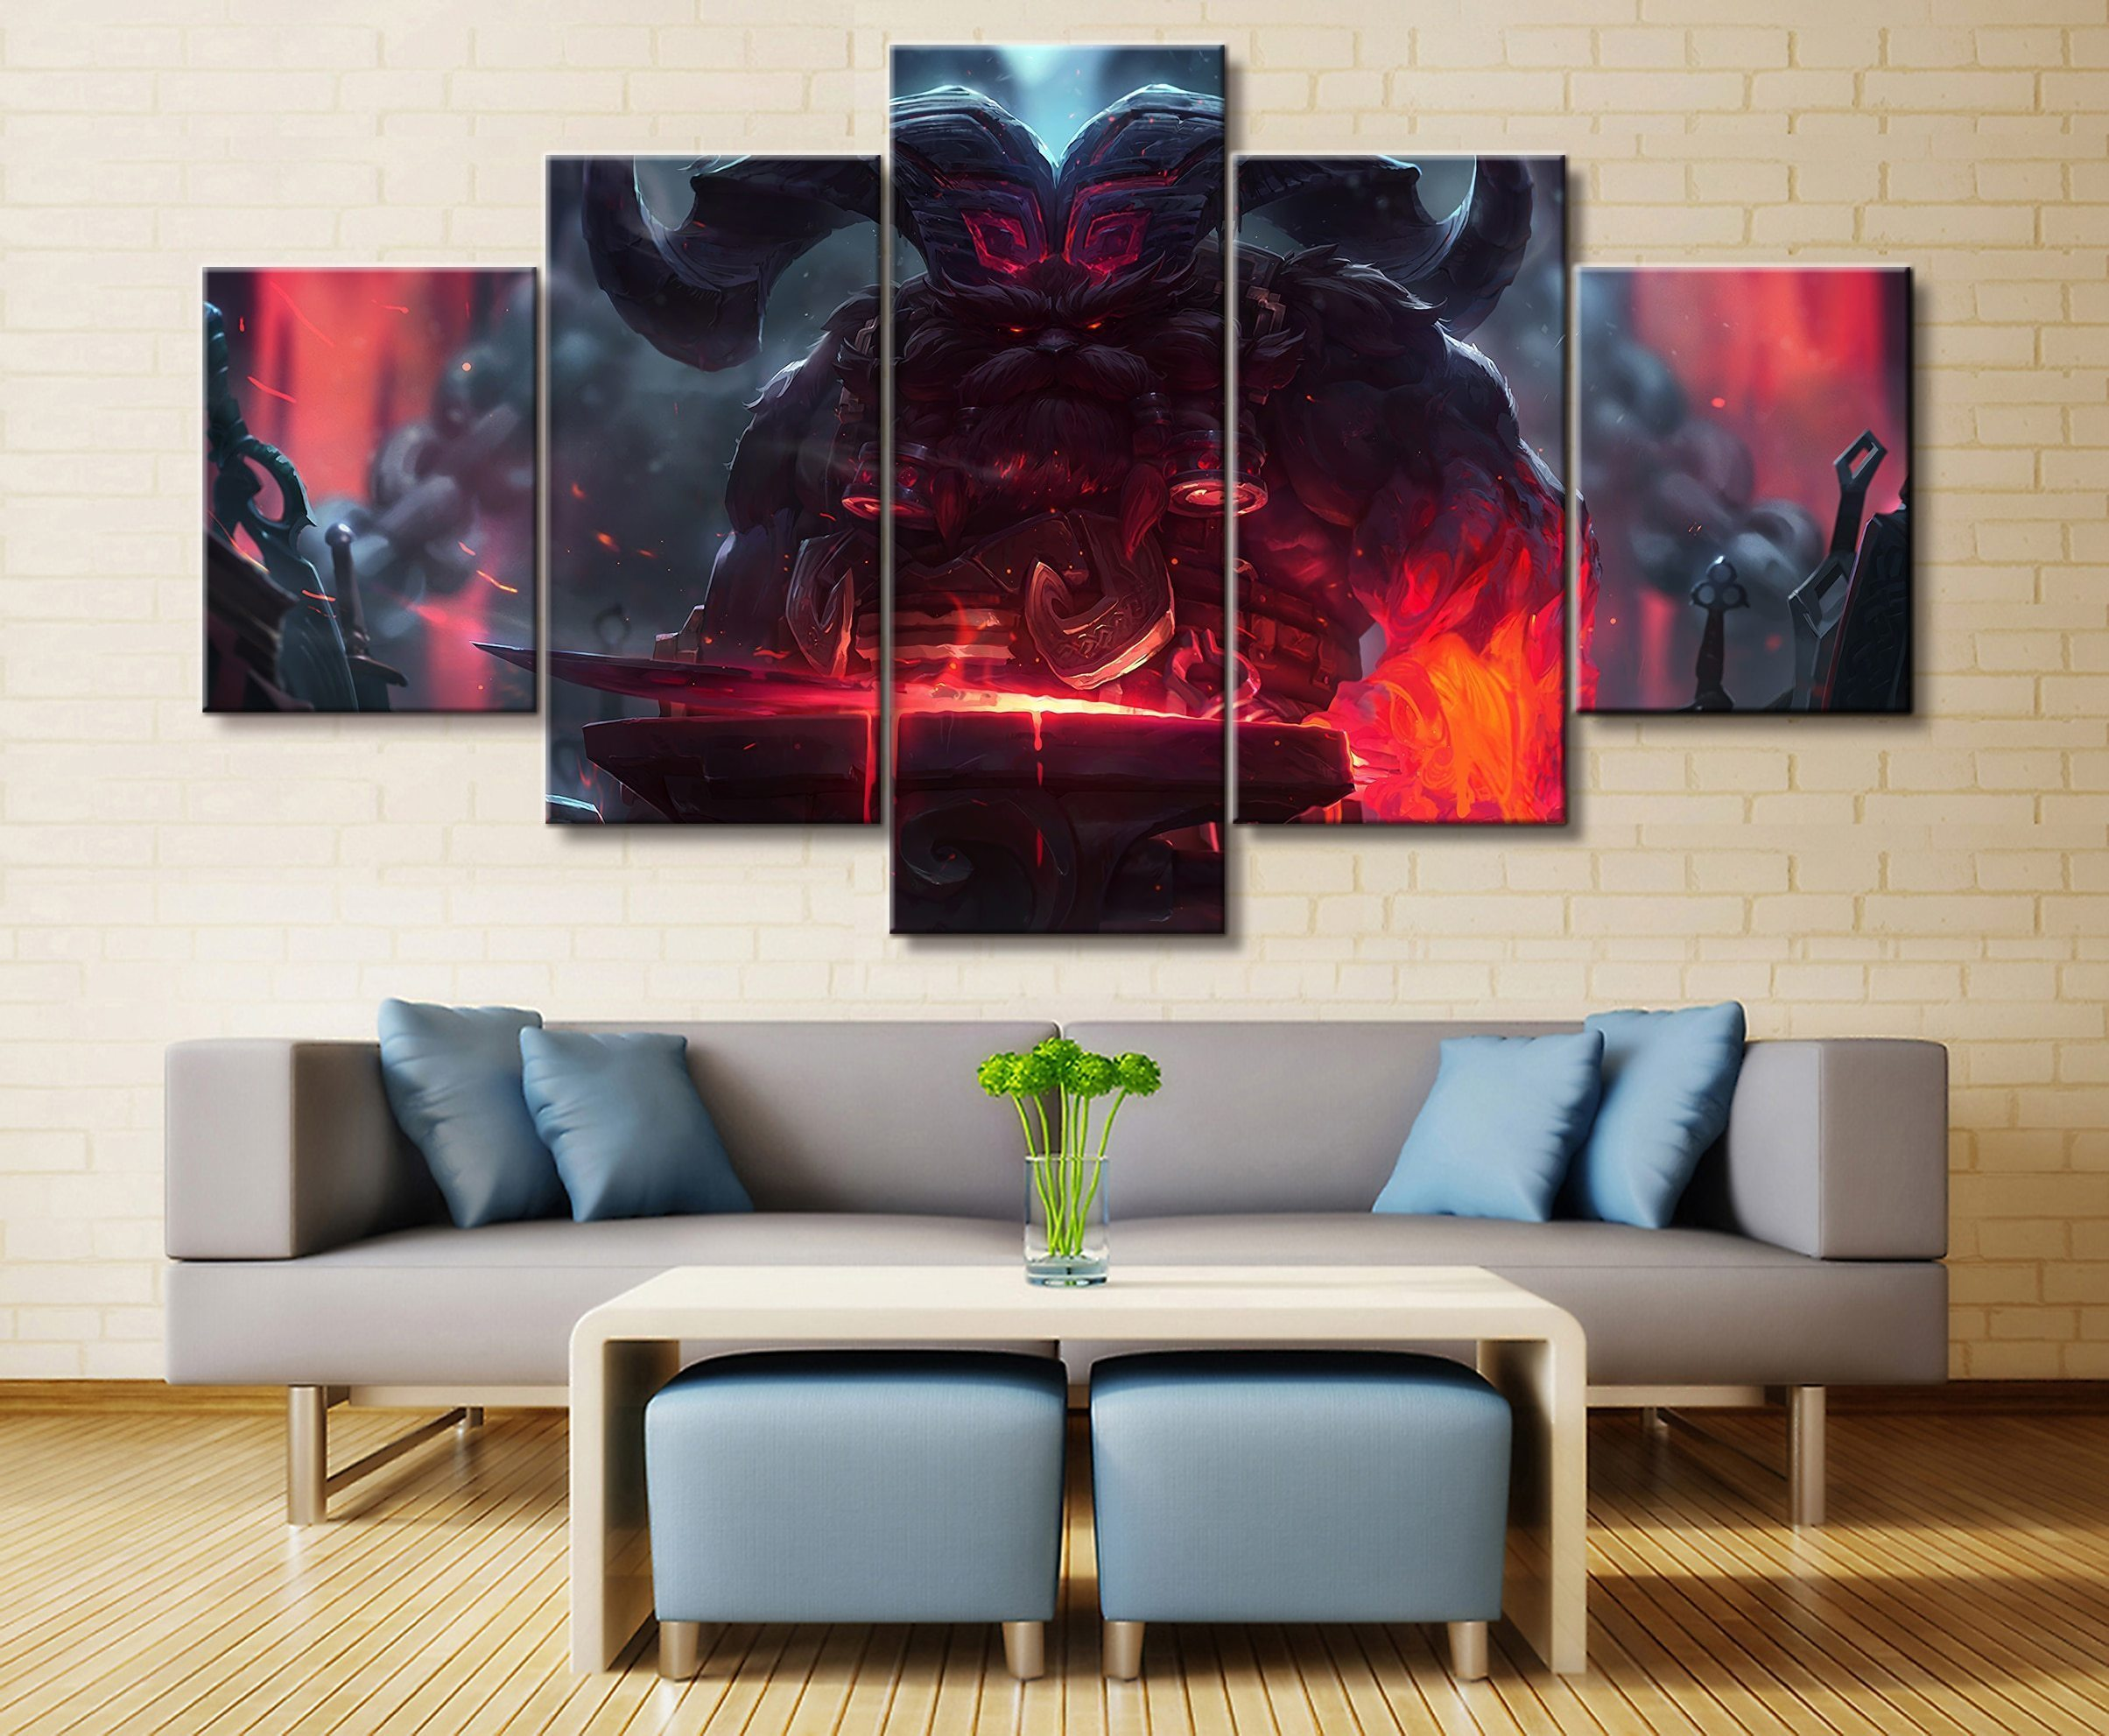 Pin By Alex Mood On Ornn In 2020 Large Wall Art Canvas Wall Art League Of Legends